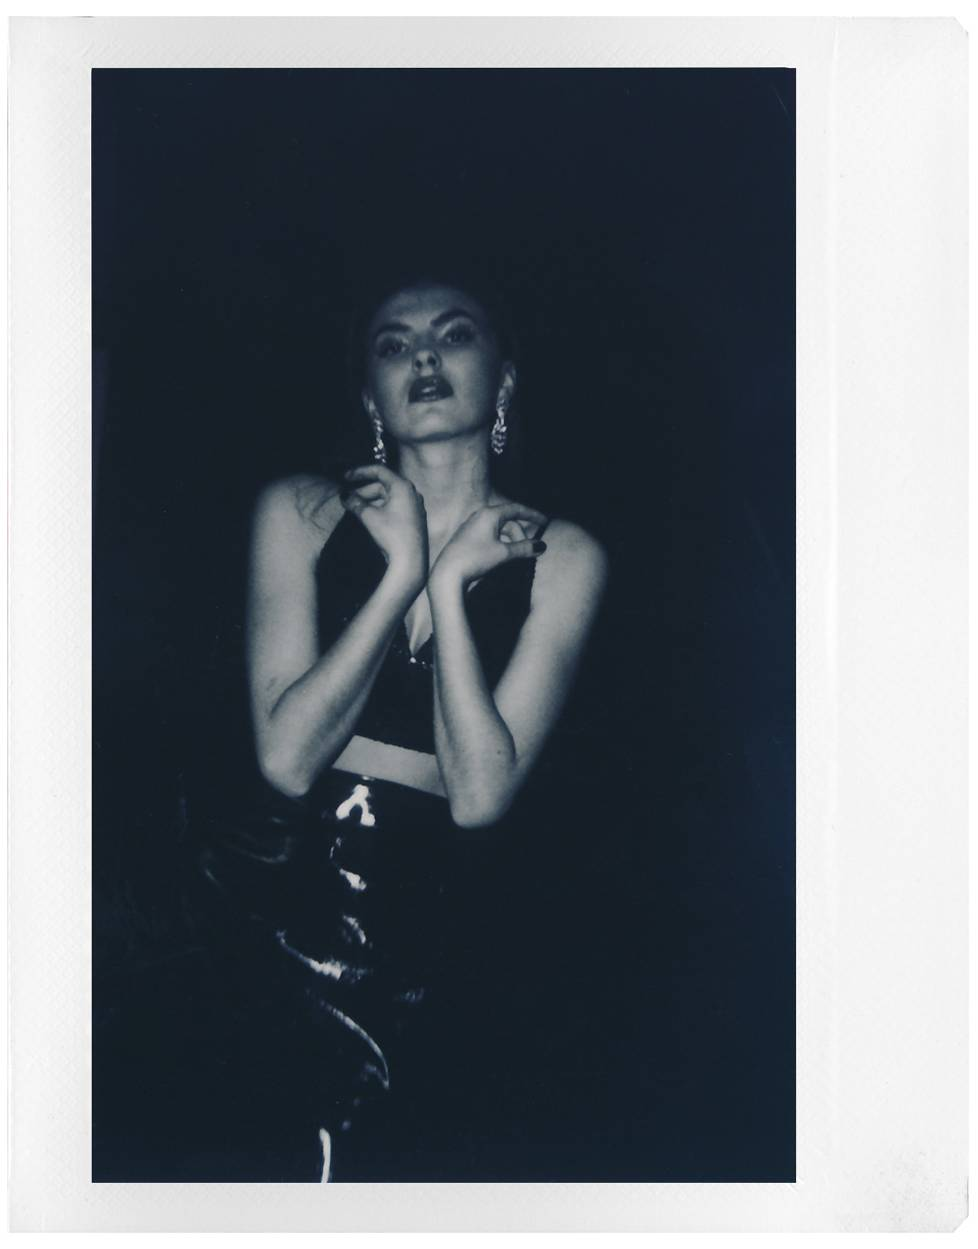 Elisabeth Gatterburg: Reviving Old Hollywood Glam with the Lomo'Instant Wide